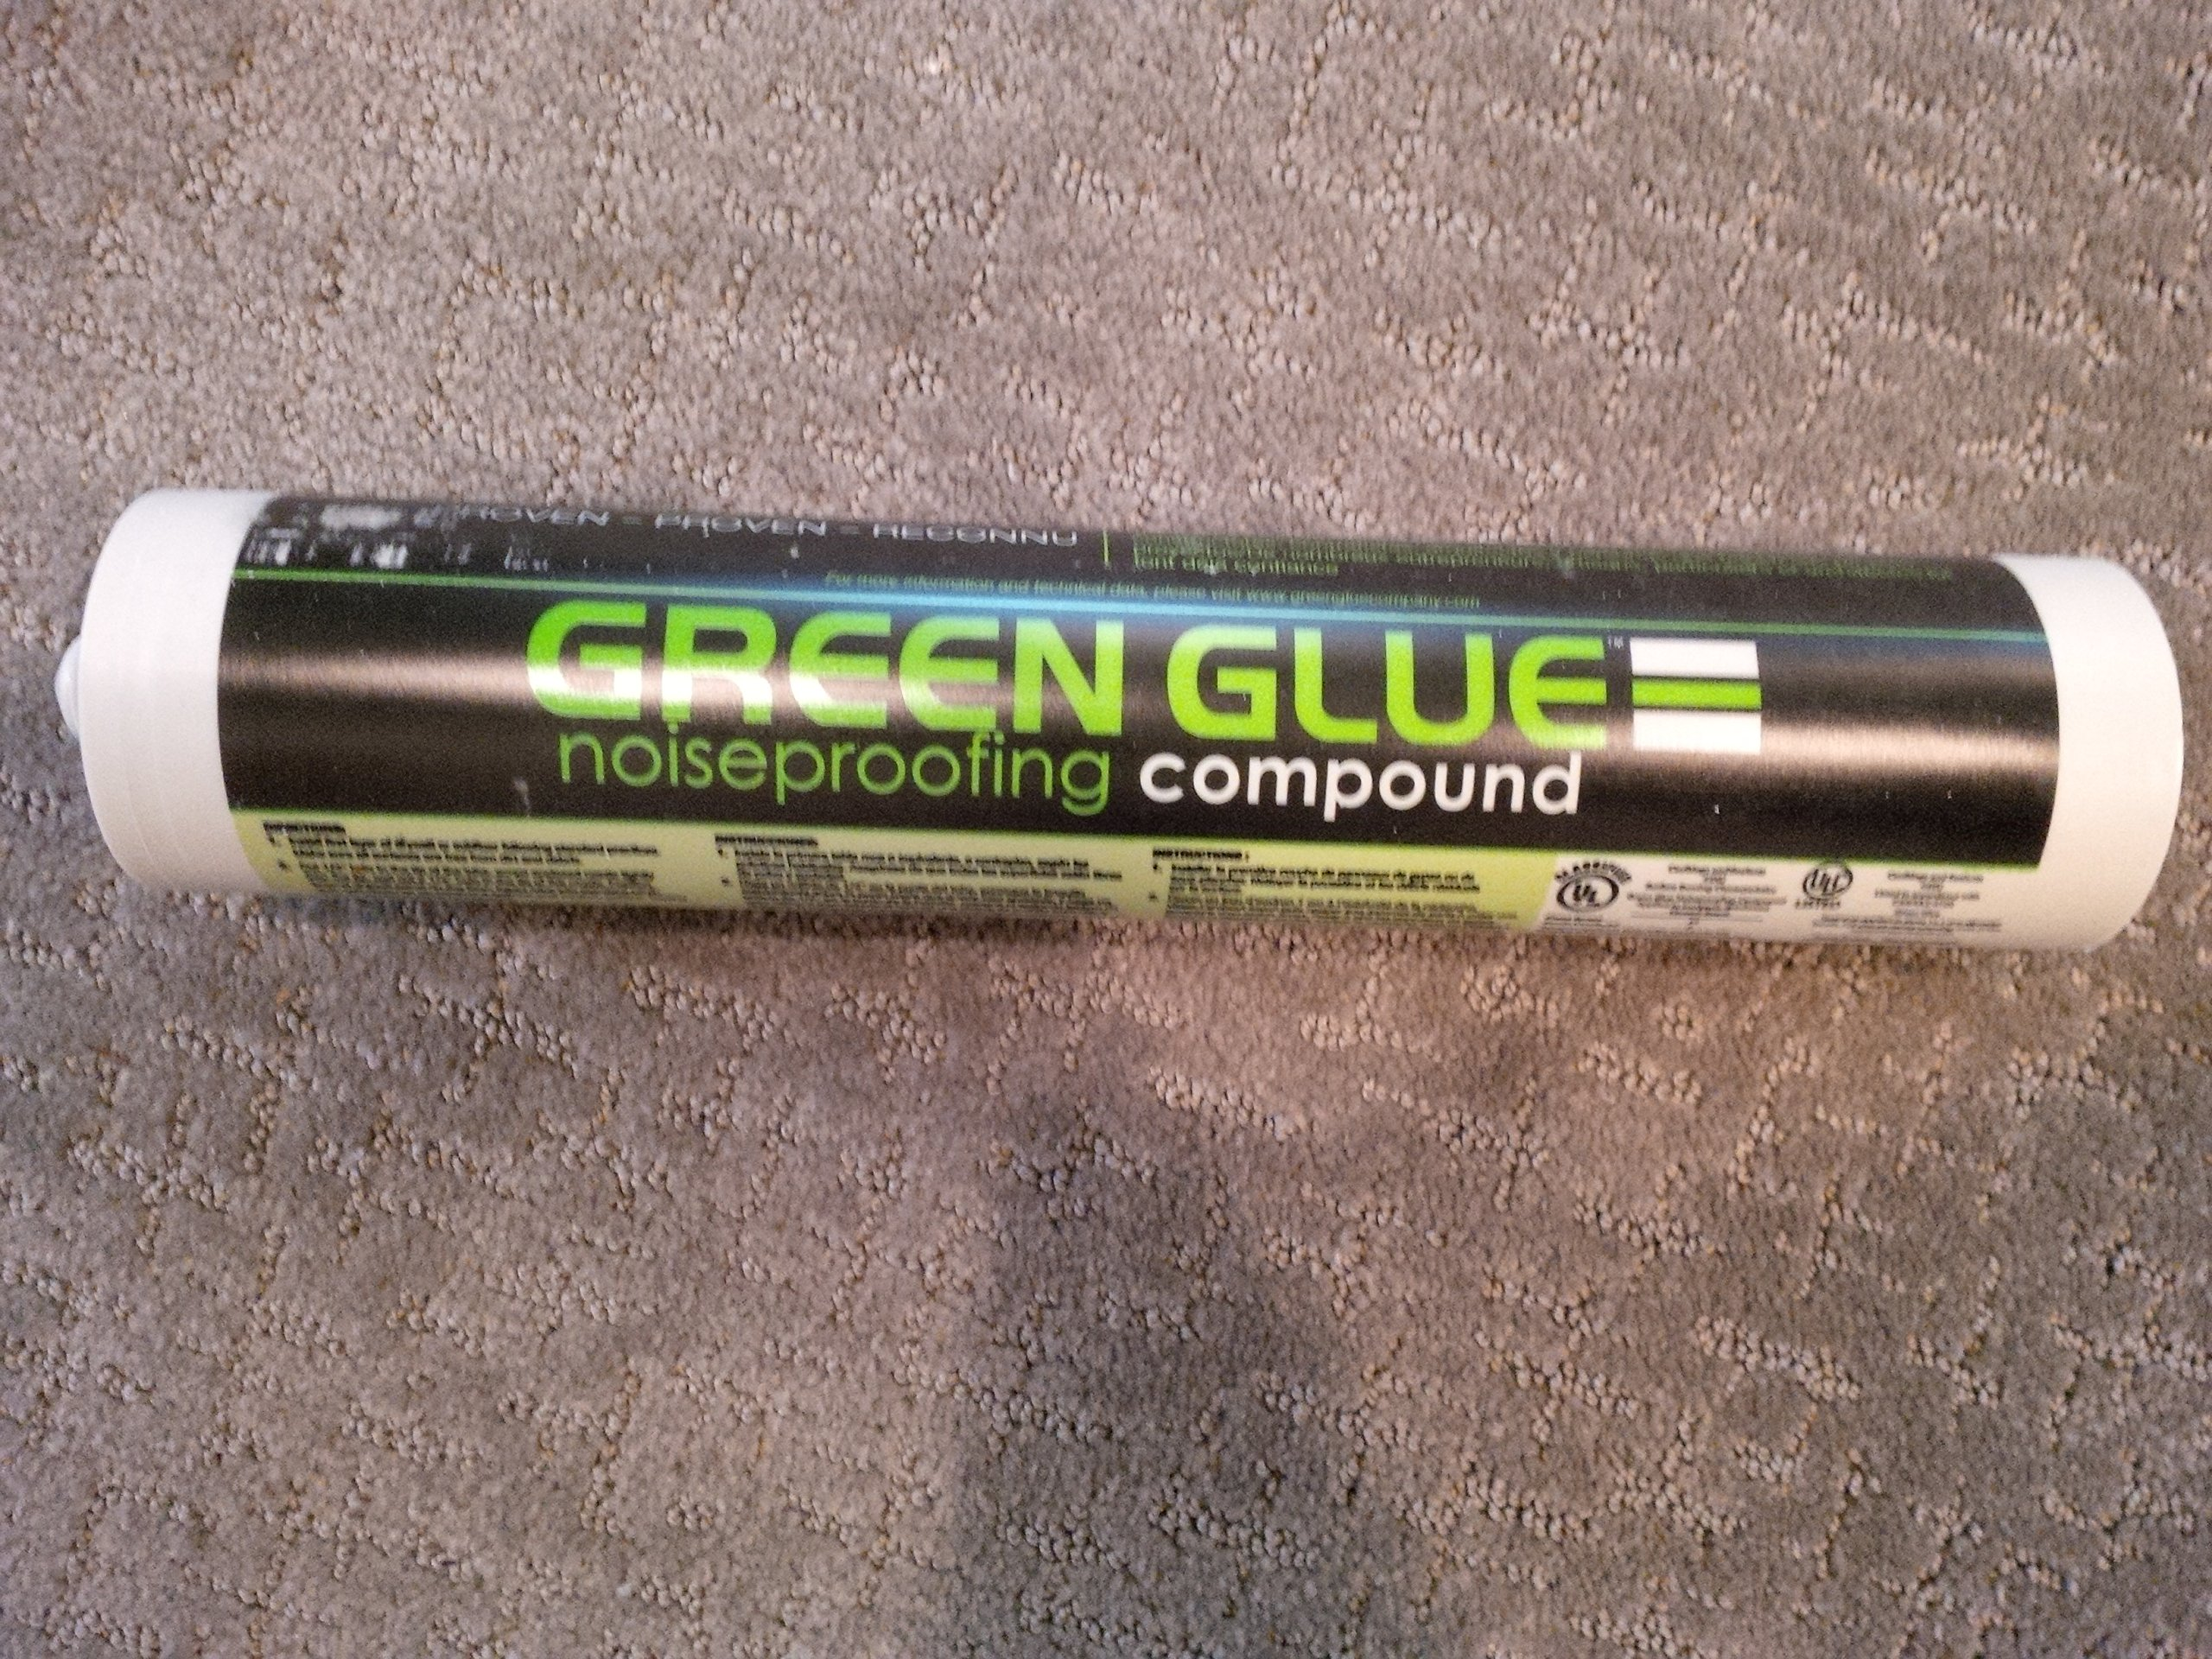 Case of Green Glue Noiseproofing Compound - 12 Tubes